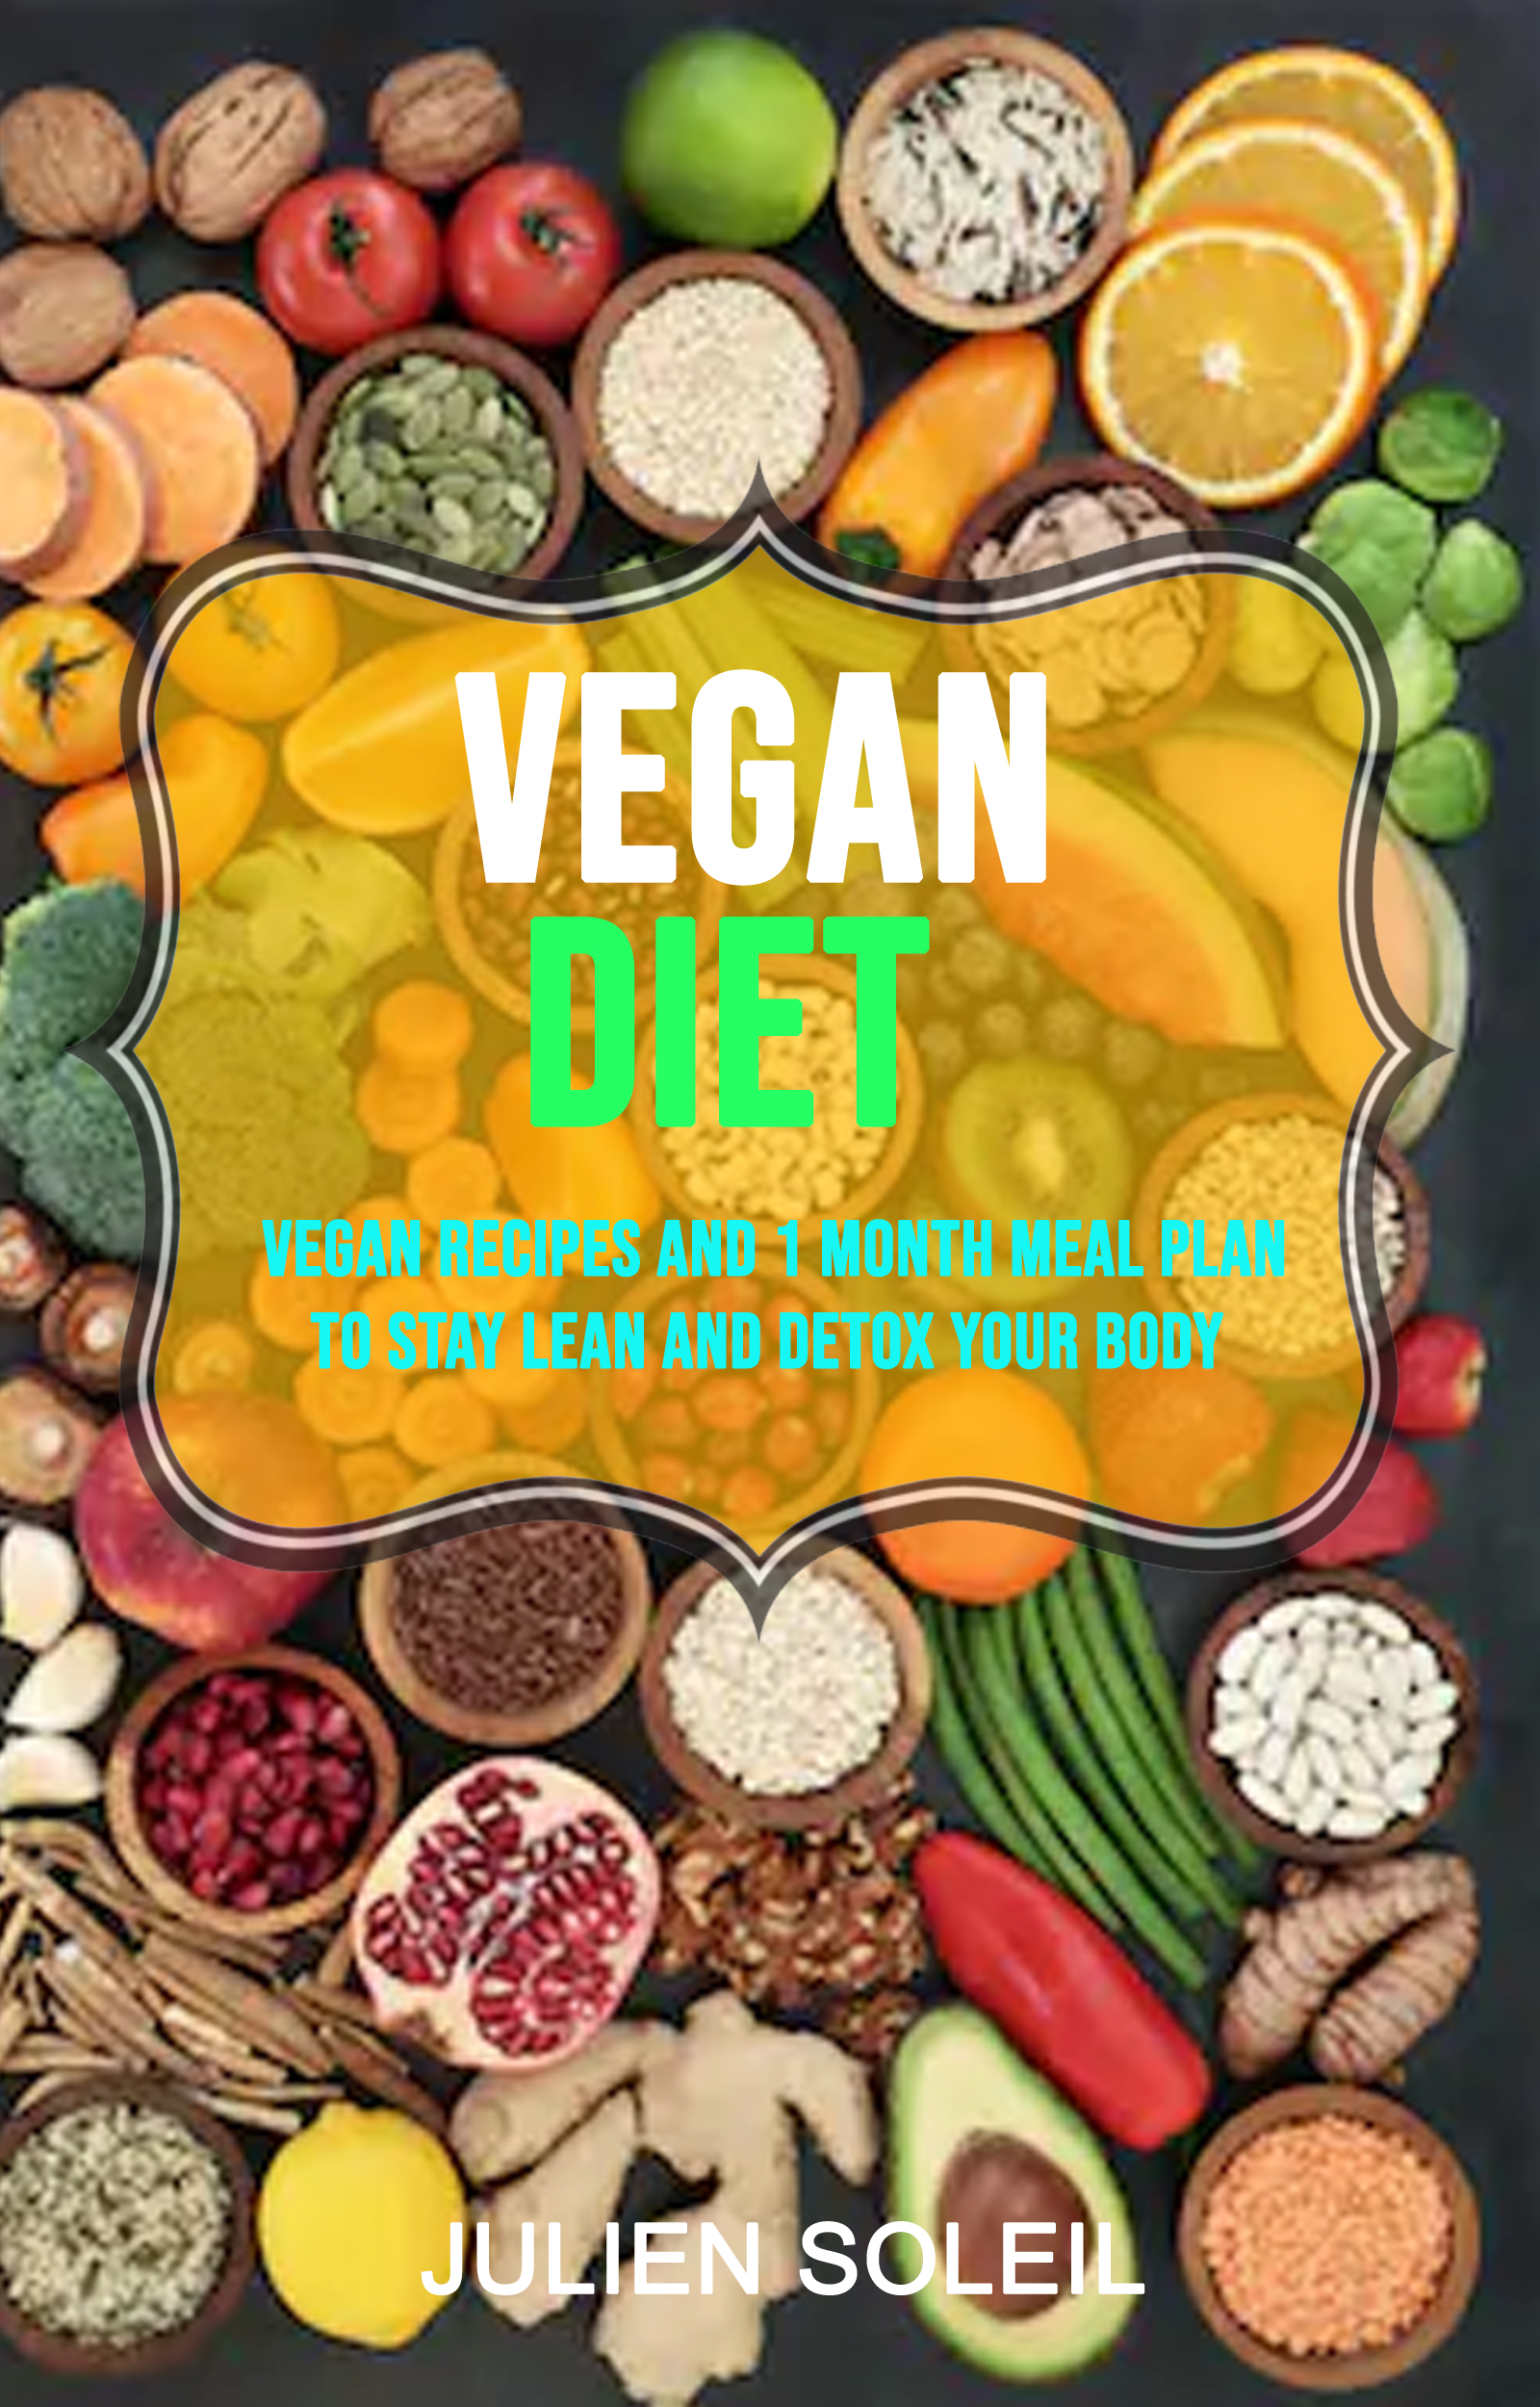 Vegan diet: vegan recipes and 1 month meal plan to stay lean and detox your body